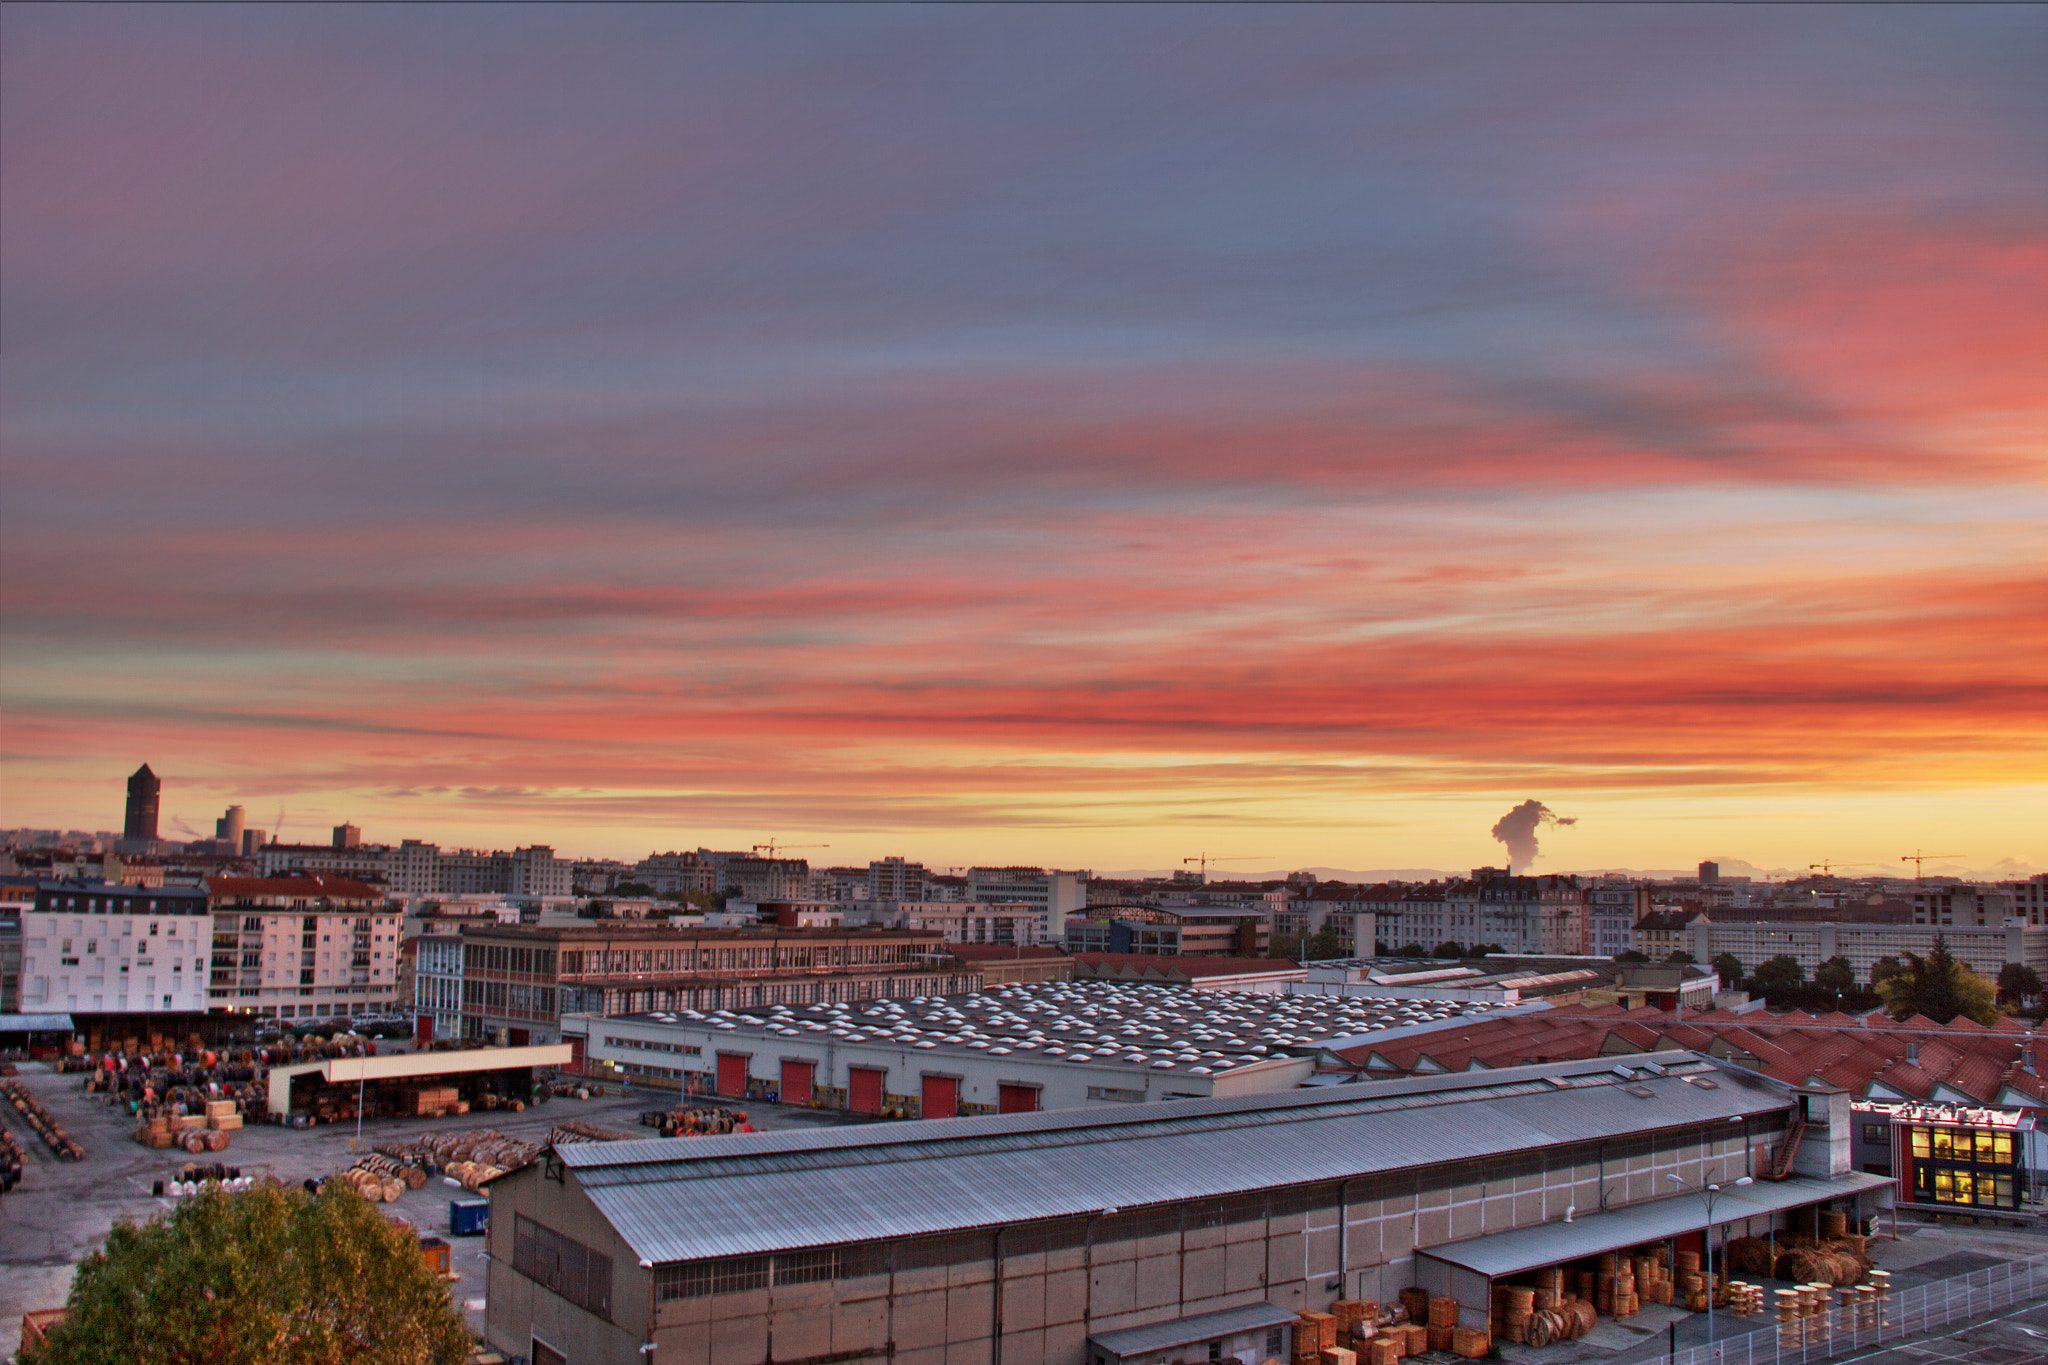 Photograph Wake up Lyon! by Aerni Adeline on 500px